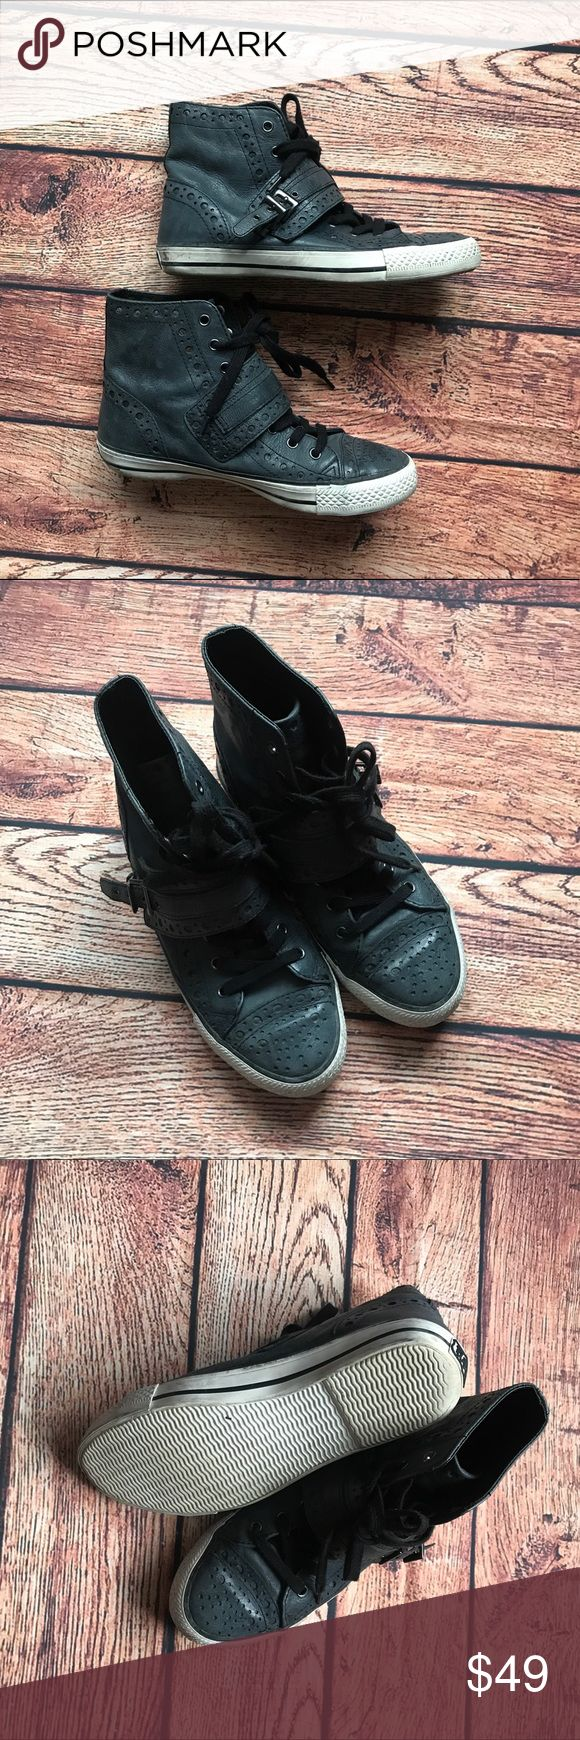 ASH leather high top sneakers shoes 38 8 Ash leather sneakers. Sz 38. Very good condition. Ash Shoes Sneakers